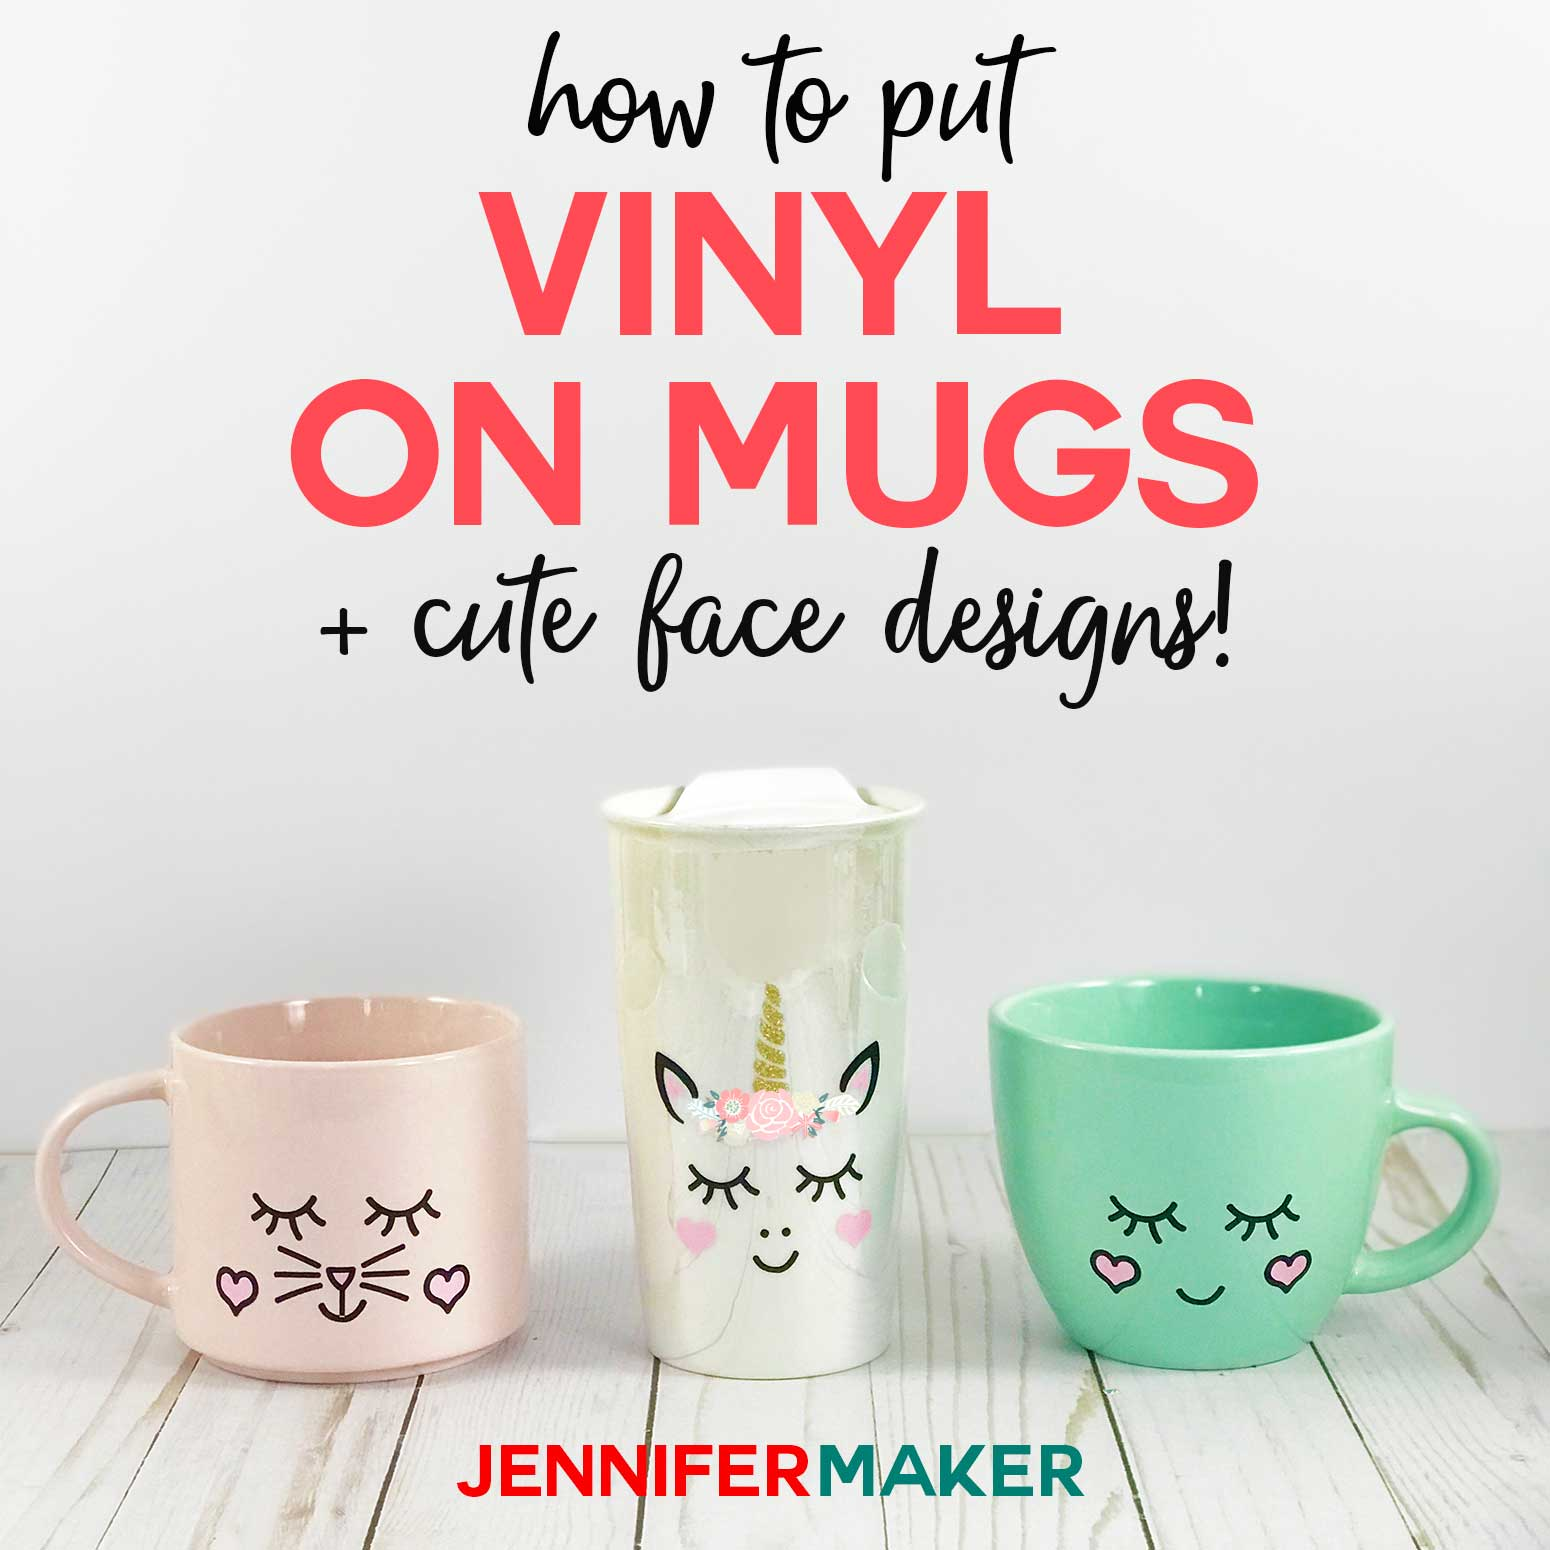 How to put vinyl on mugs plus cute face designs and a unicorn! #cricut #cricutmade #vinyl #unicorn #svgcutfile